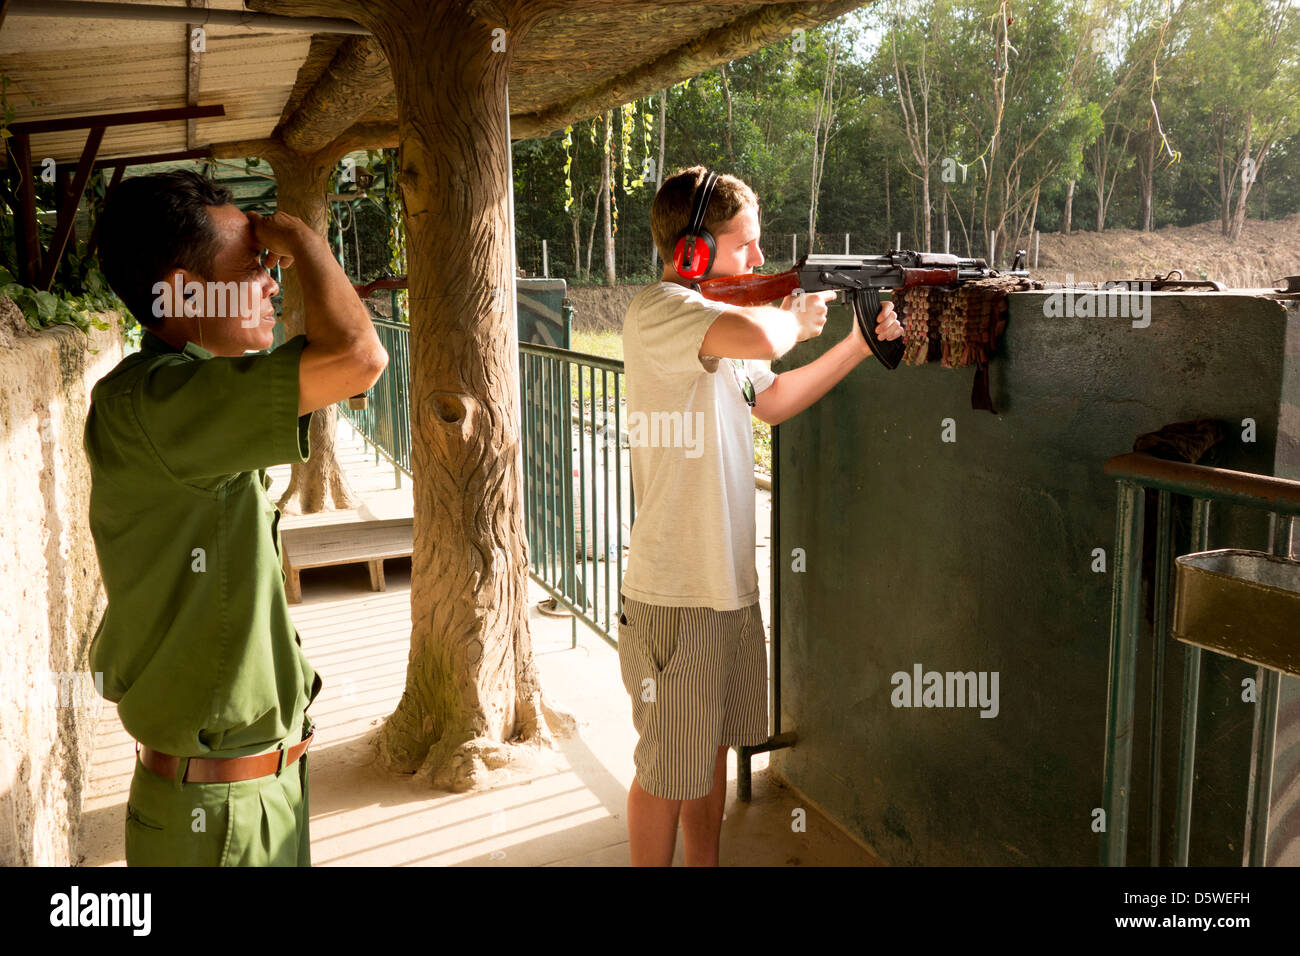 Tourist fires AK 47 Kalashnikov automatic rifle at rifle range at the Cu Chi Viet Cong Tunnels in Cu Chi Vietnam - Stock Image